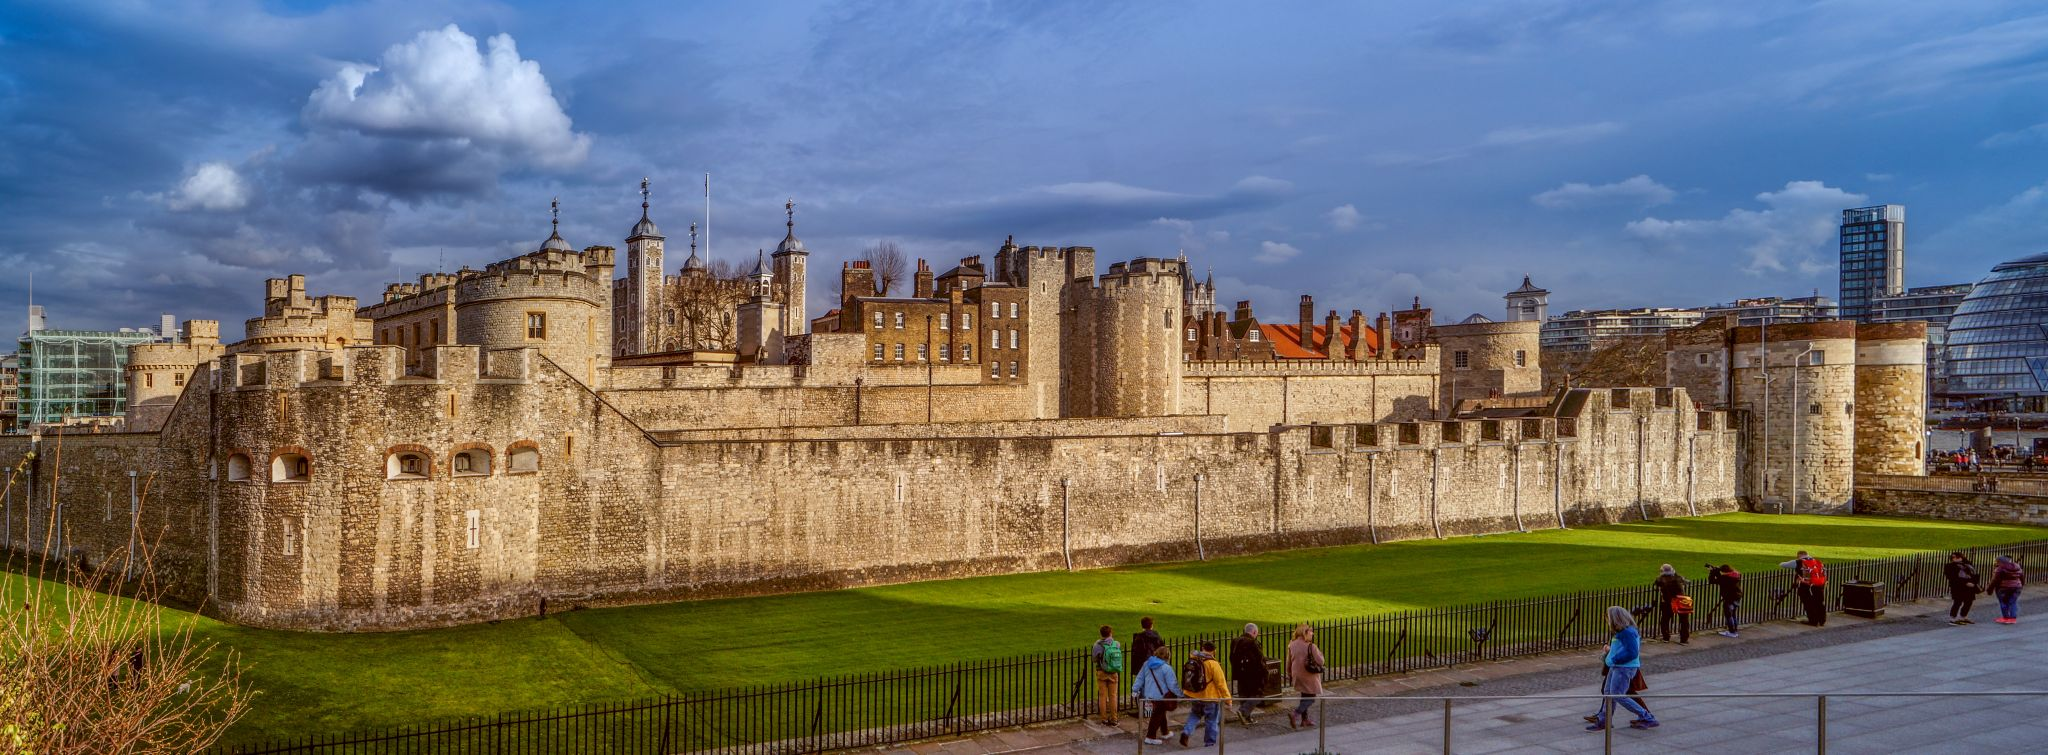 Tower of London, outside view, United Kingdom